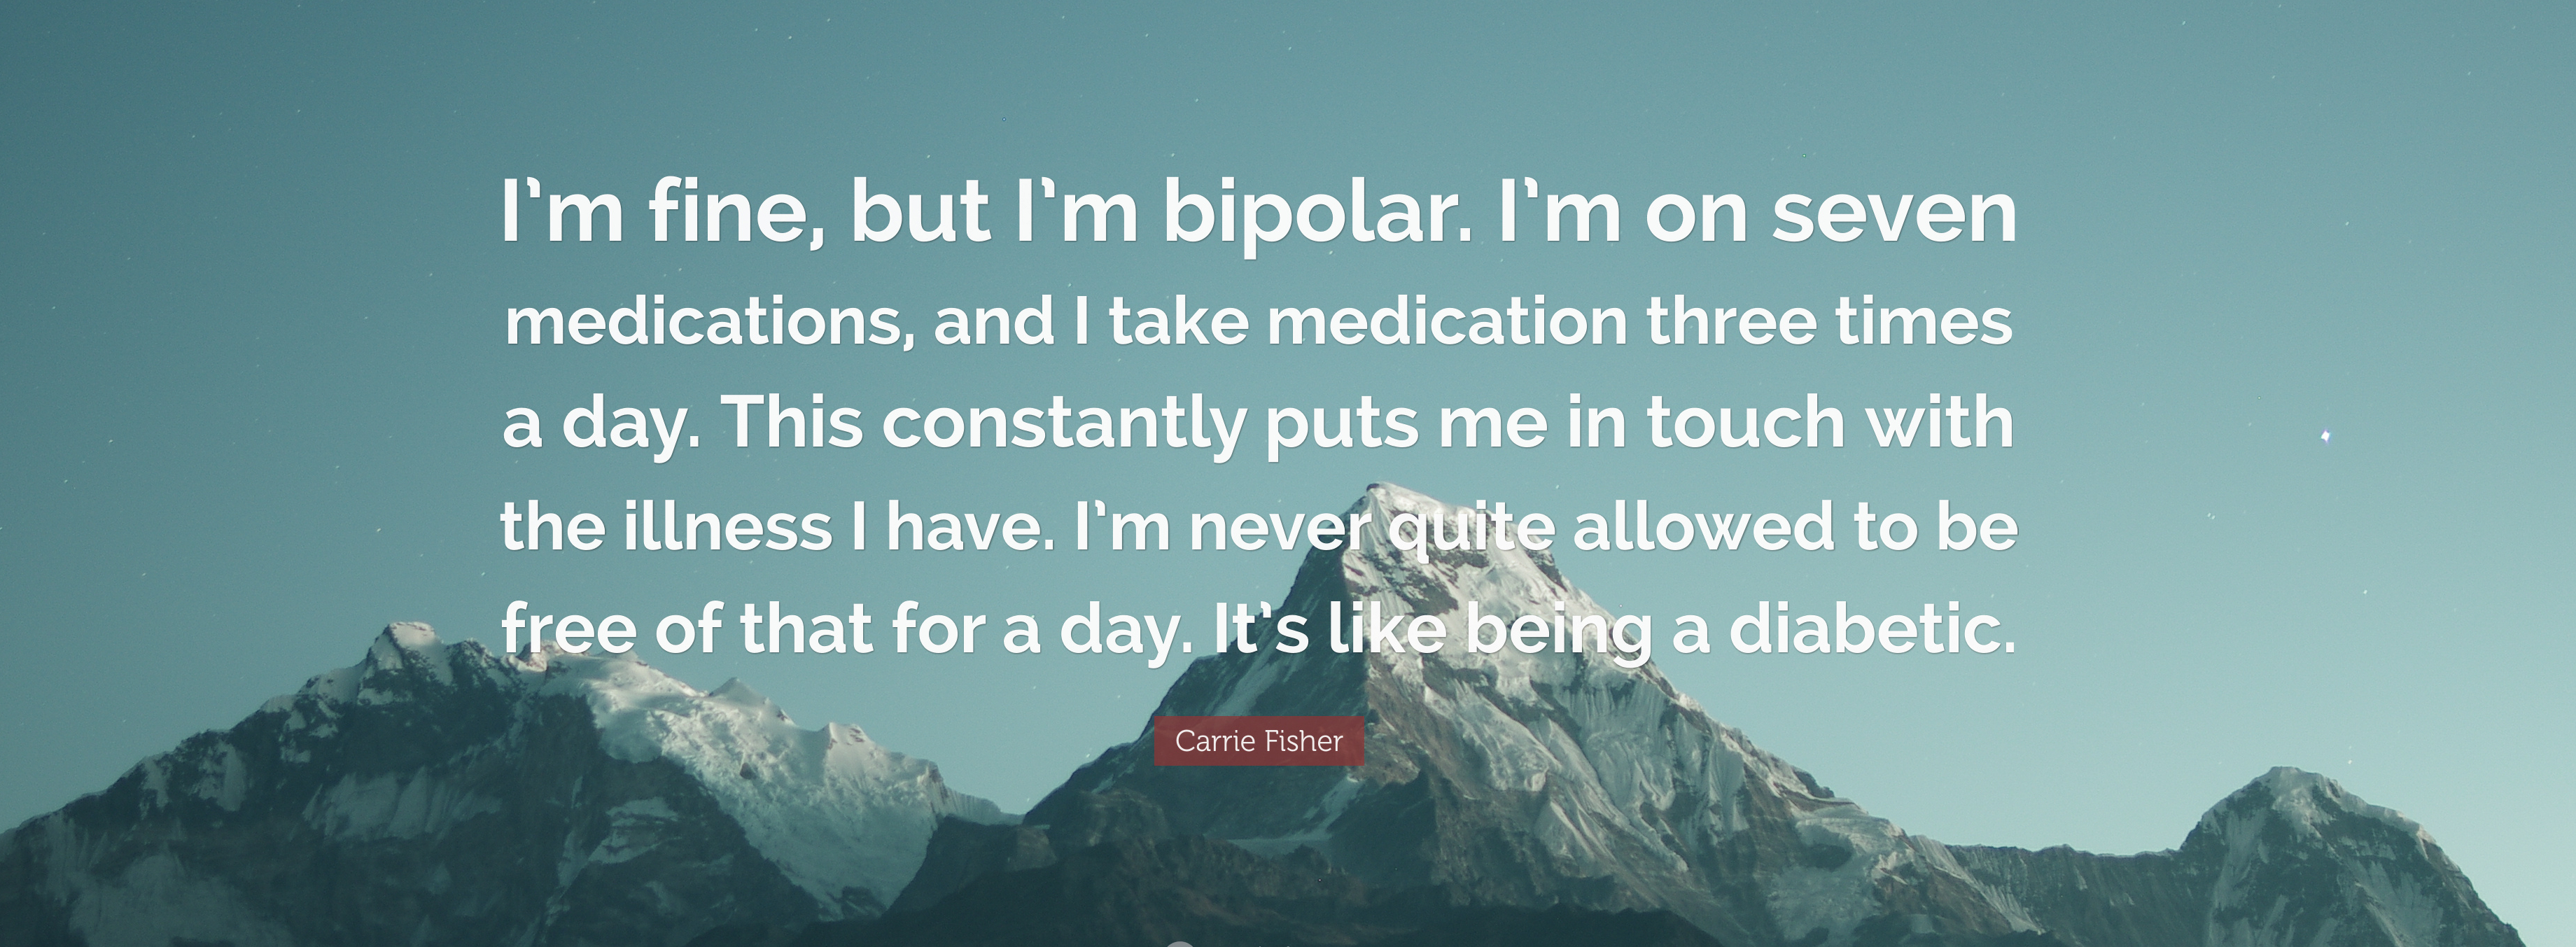 4209495-Carrie-Fisher-Quote-I-m-fine-but-I-m-bipolar-I-m-on-seven